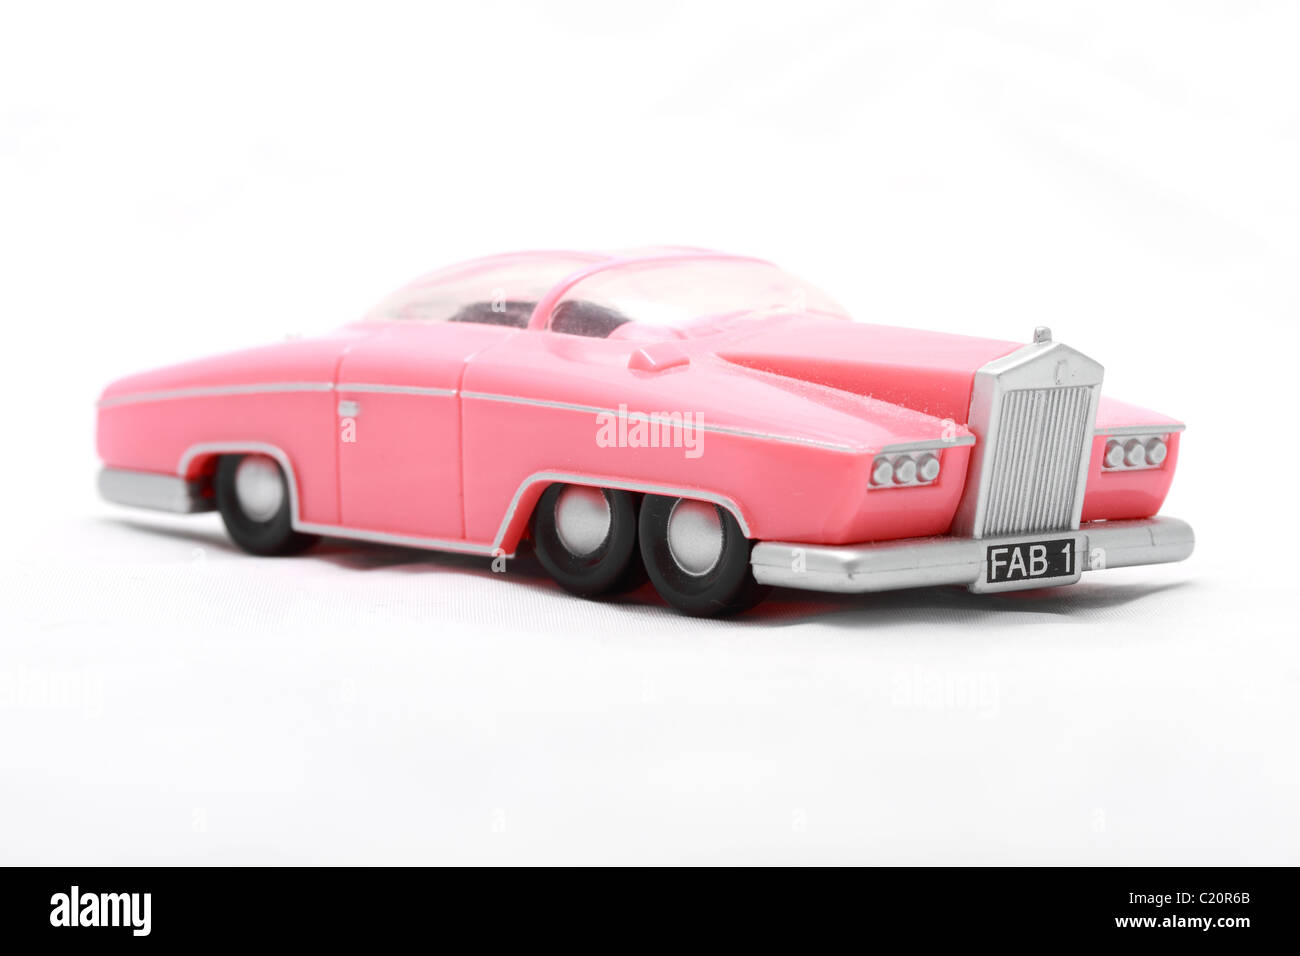 Lady Penelope's Rolls Royce toy or model from the Gerry Andersen TV puppet series Thunderbirds. Lady Penelope - Stock Image